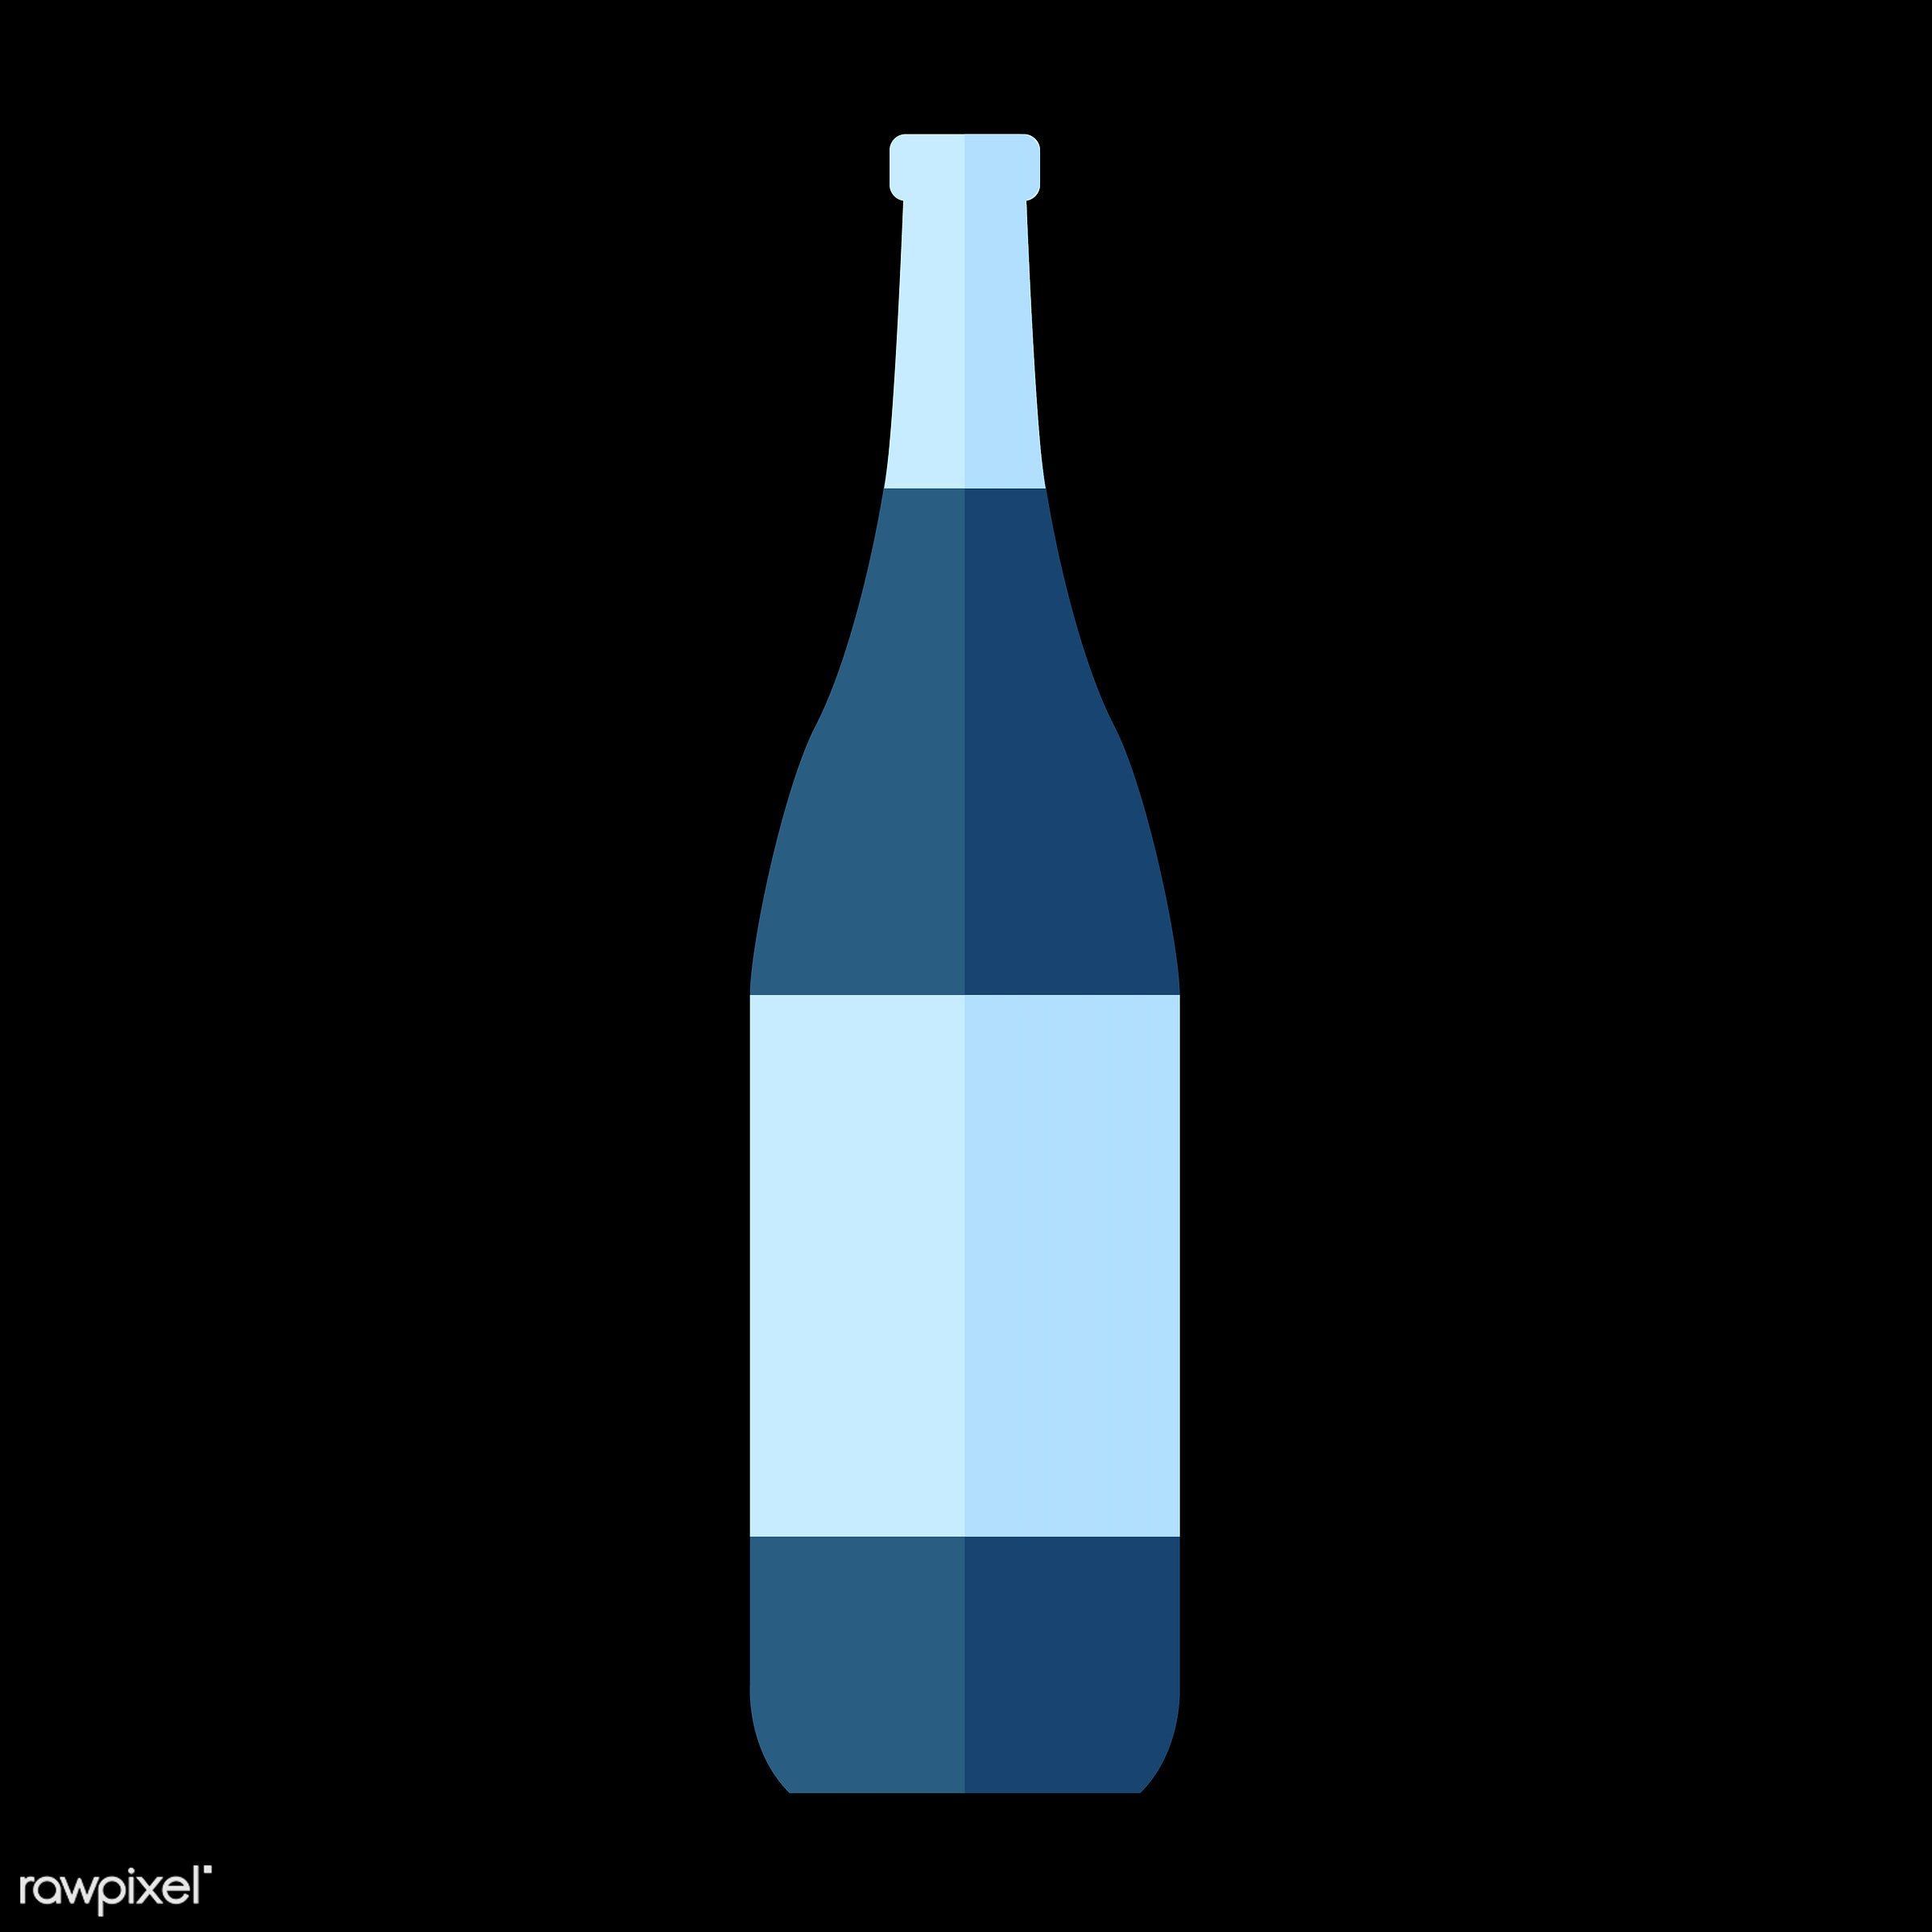 Wine bottle vector - vector, graphic, illustration, icon, symbol, colorful, cute, drink, beverage, water, wine, wine bottle...